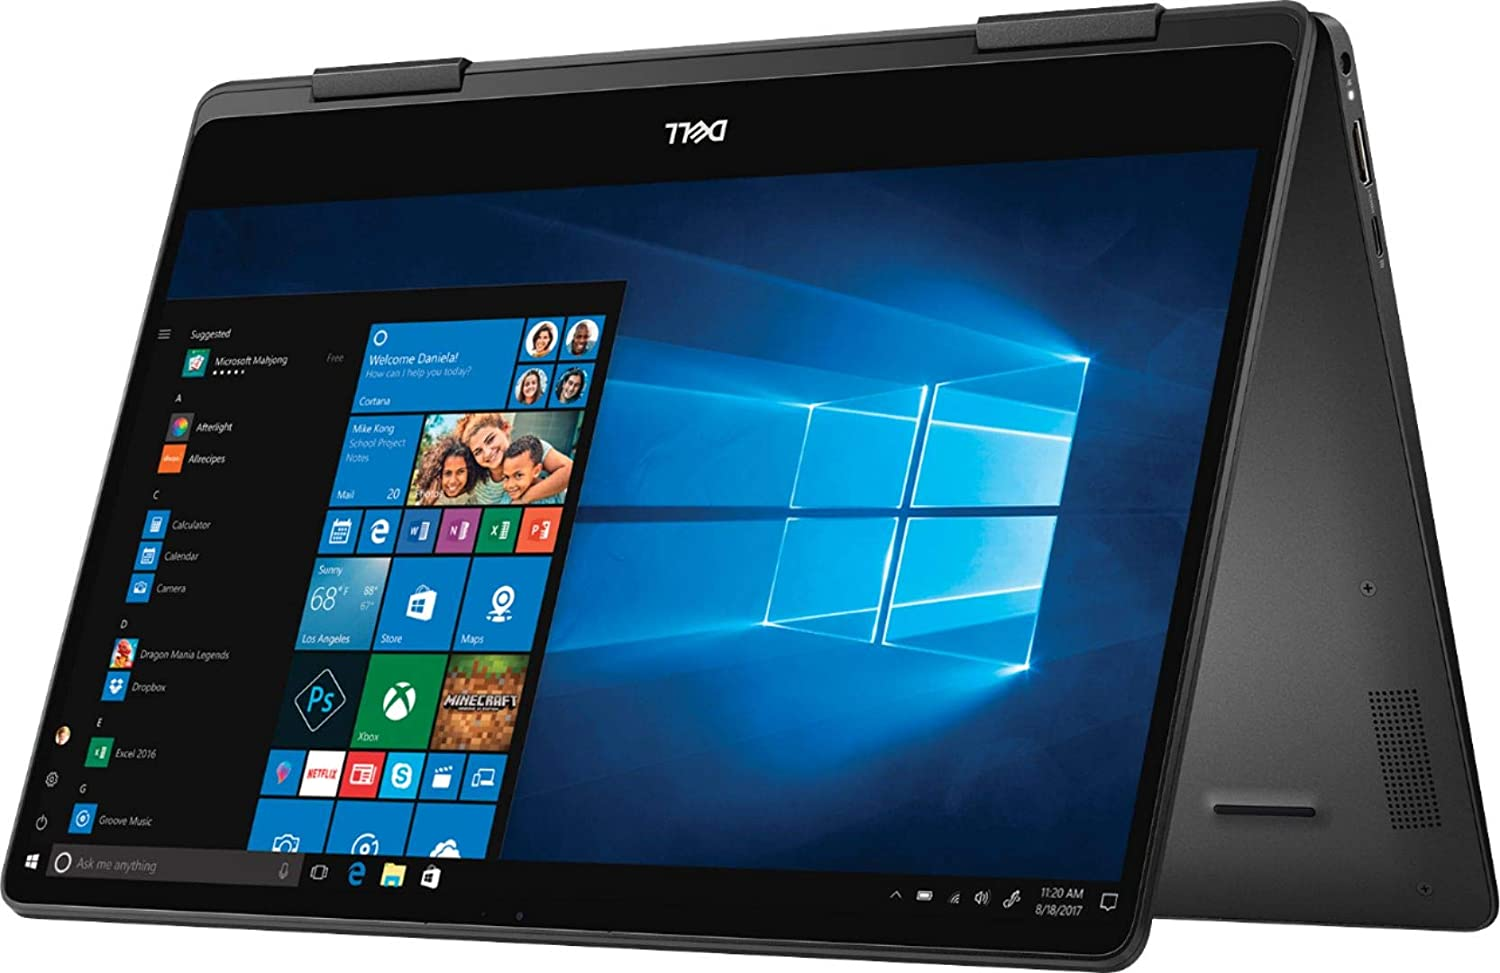 Dell Inspiron 13 7000 2 in 1 Convertible Laptop, 13.3